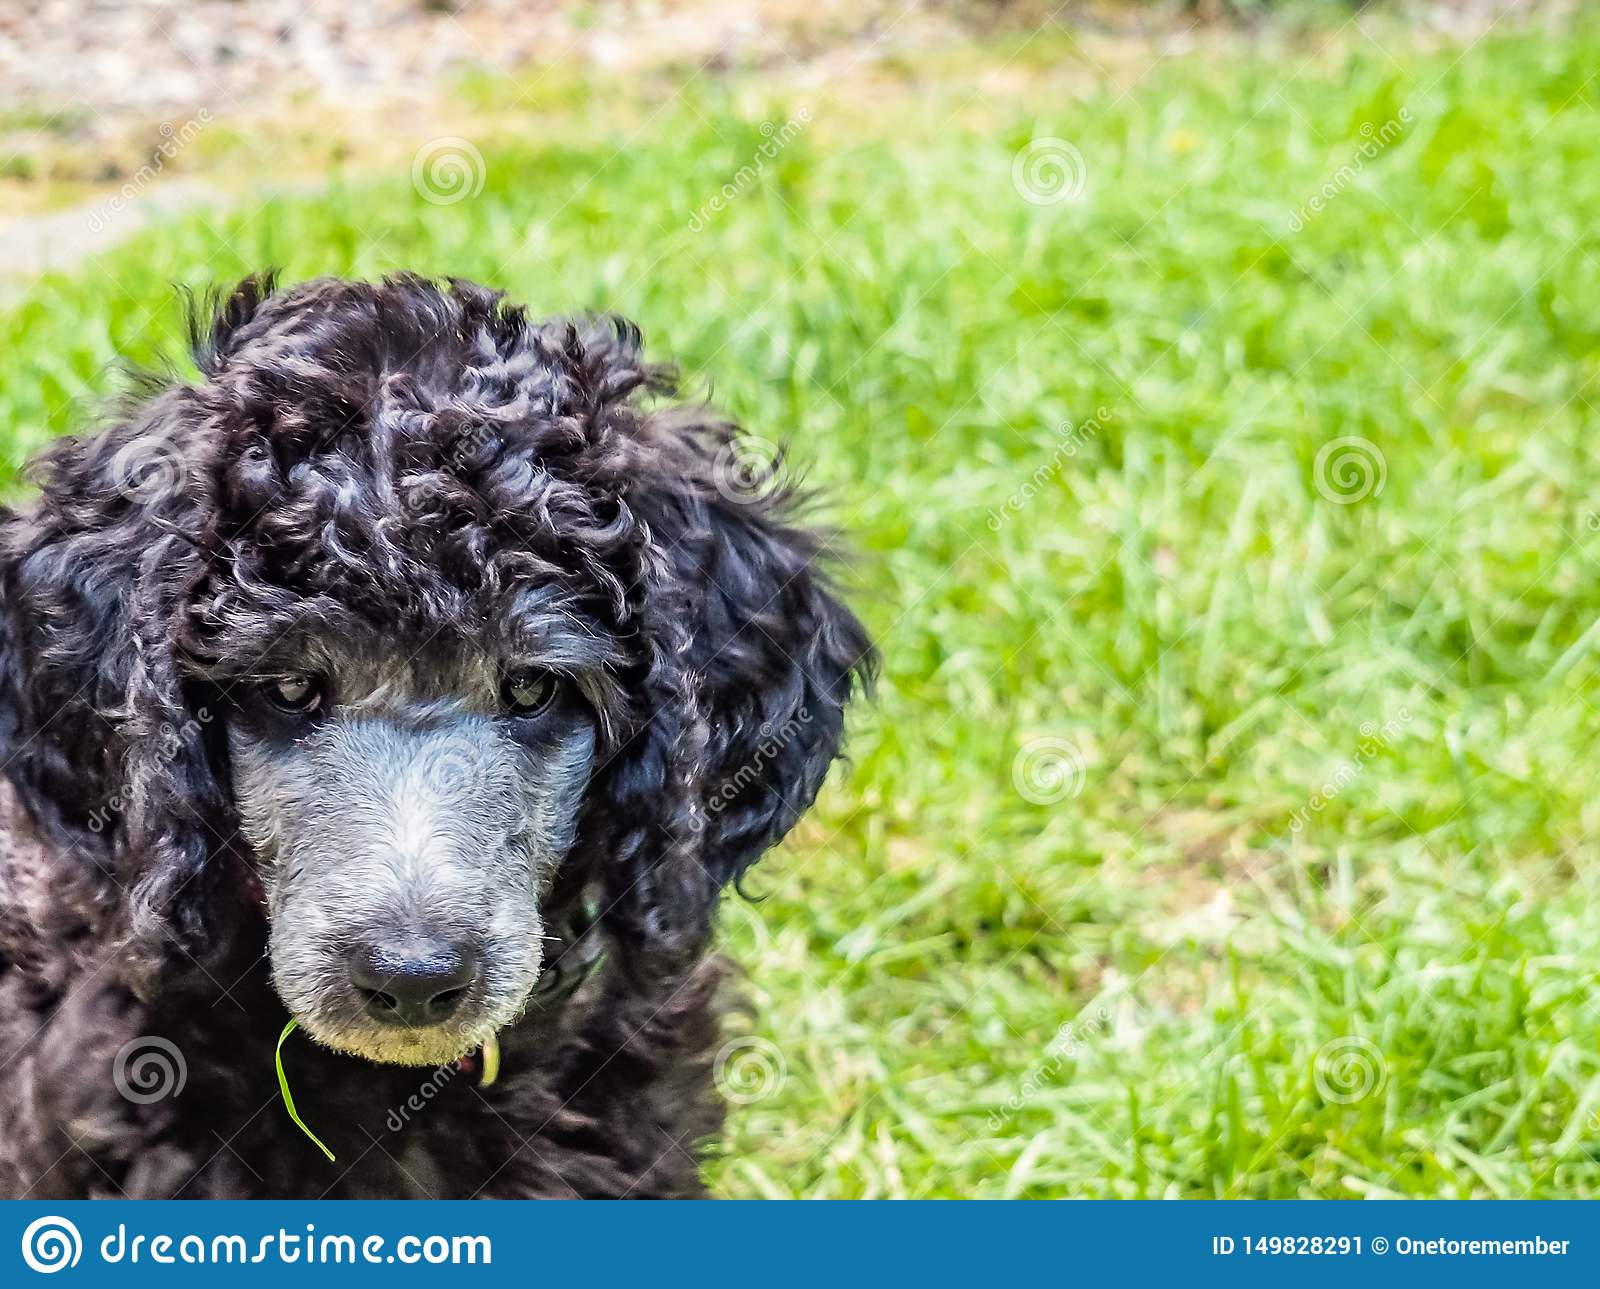 Standard Poodle Puppy Stock Image Image Of Face Small 149828291